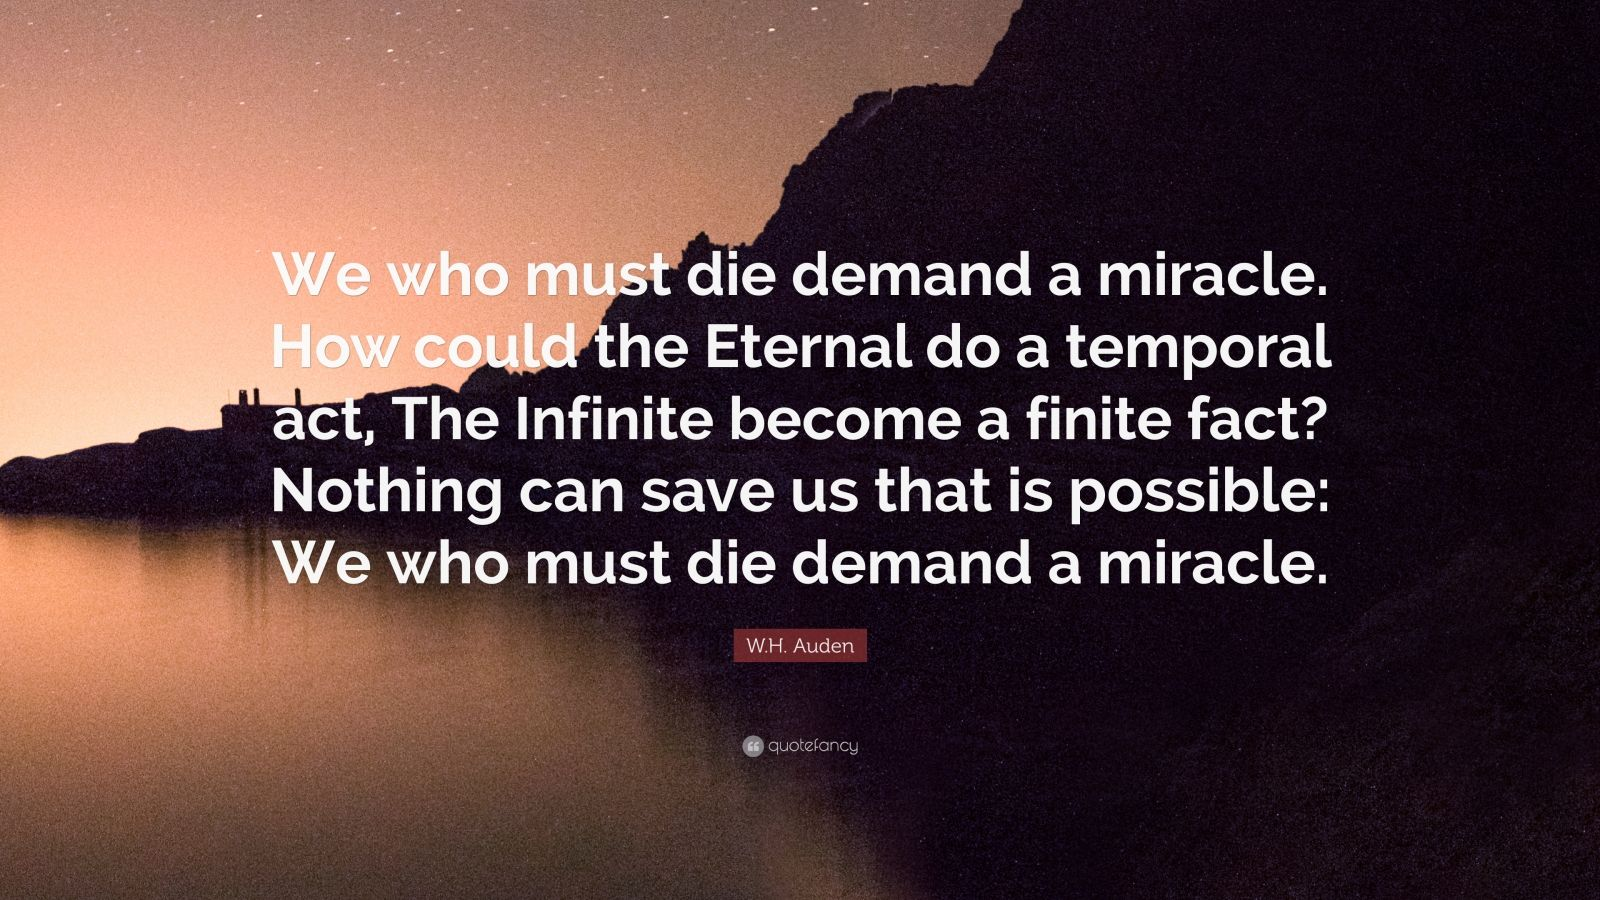 "W.H. Auden Quote: ""We who must die demand a miracle. How could the Eternal do a temporal act, The Infinite become a finite fact? Nothing can save us that is possible: We who must die demand a miracle."""